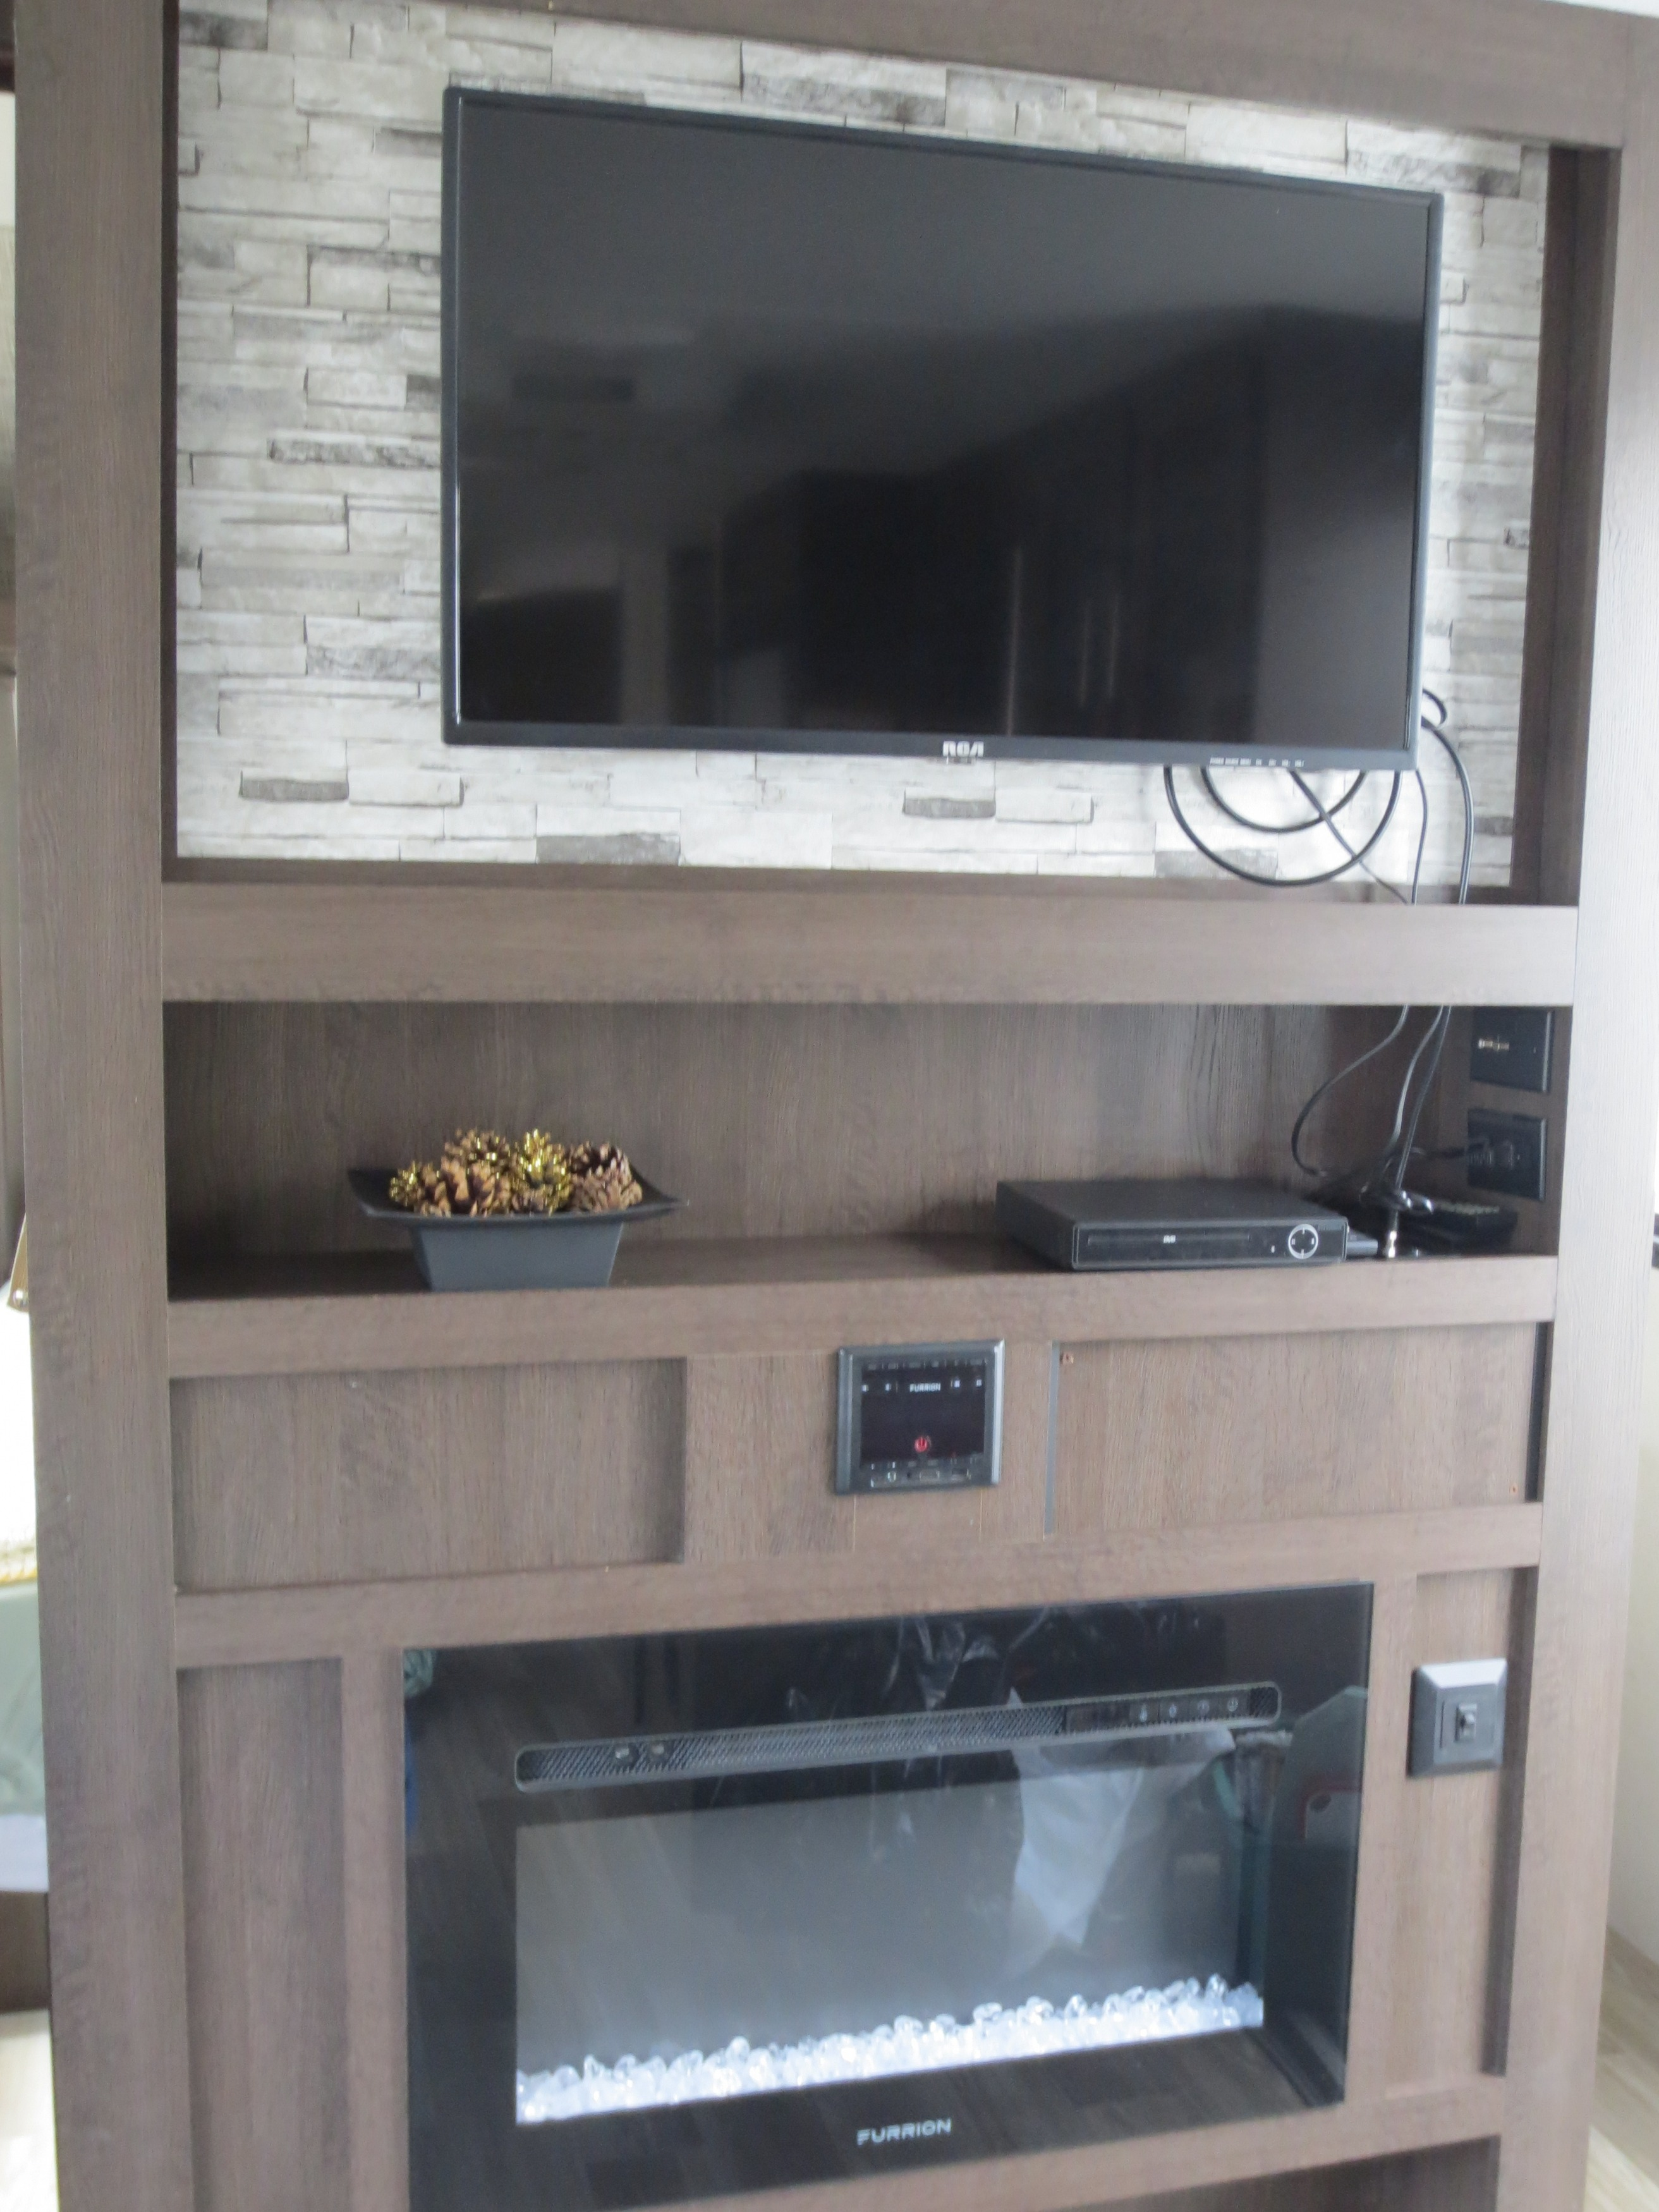 29' Cruise Lite Trailer with Slide-out TV Fireplace View